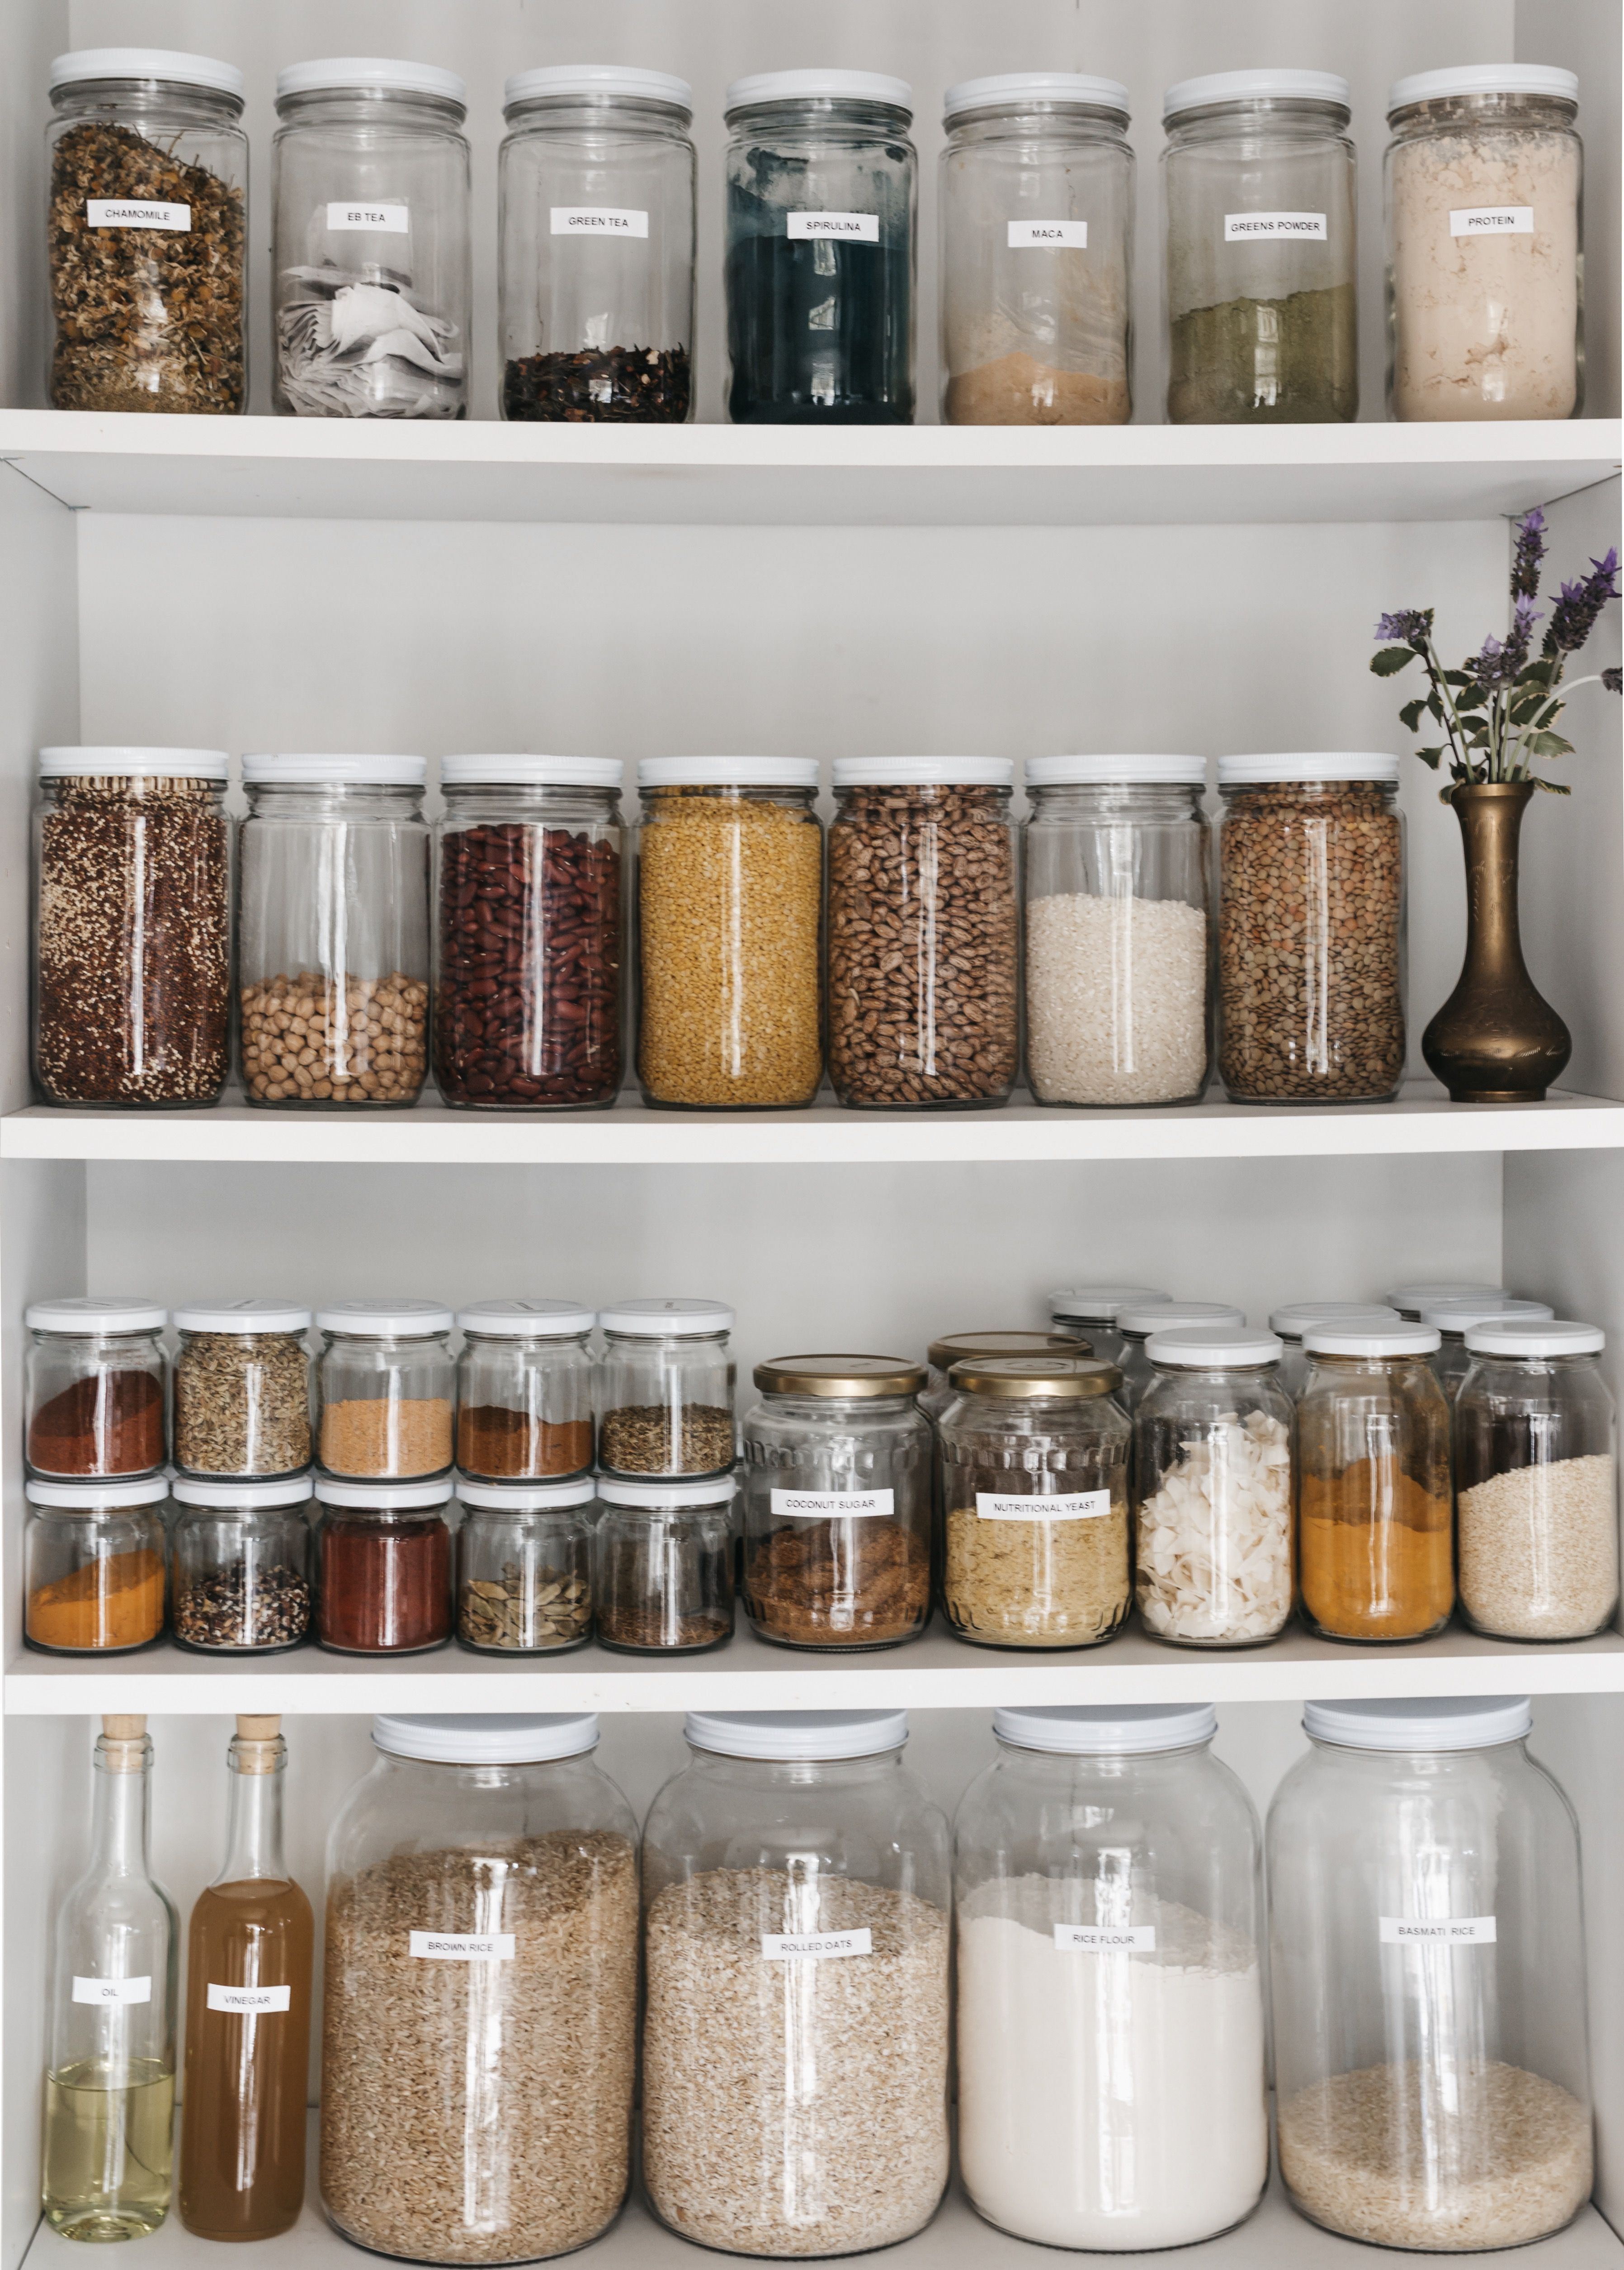 My Indian Pantry Kitchen Organization Kitchen Hacks Organization Kitchen Organization Pantry